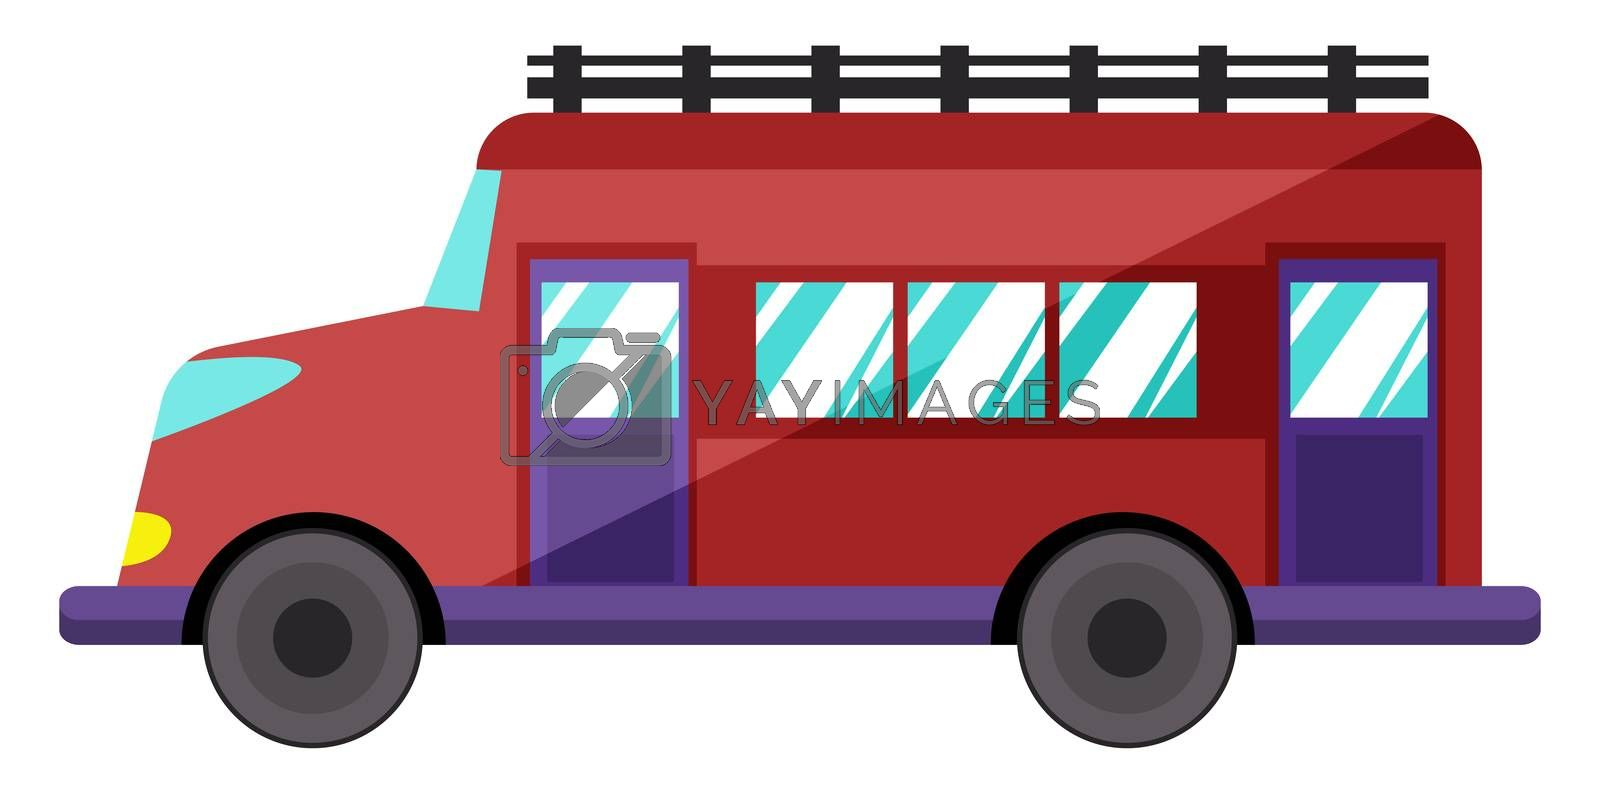 Red school bus, illustration, vector on white background